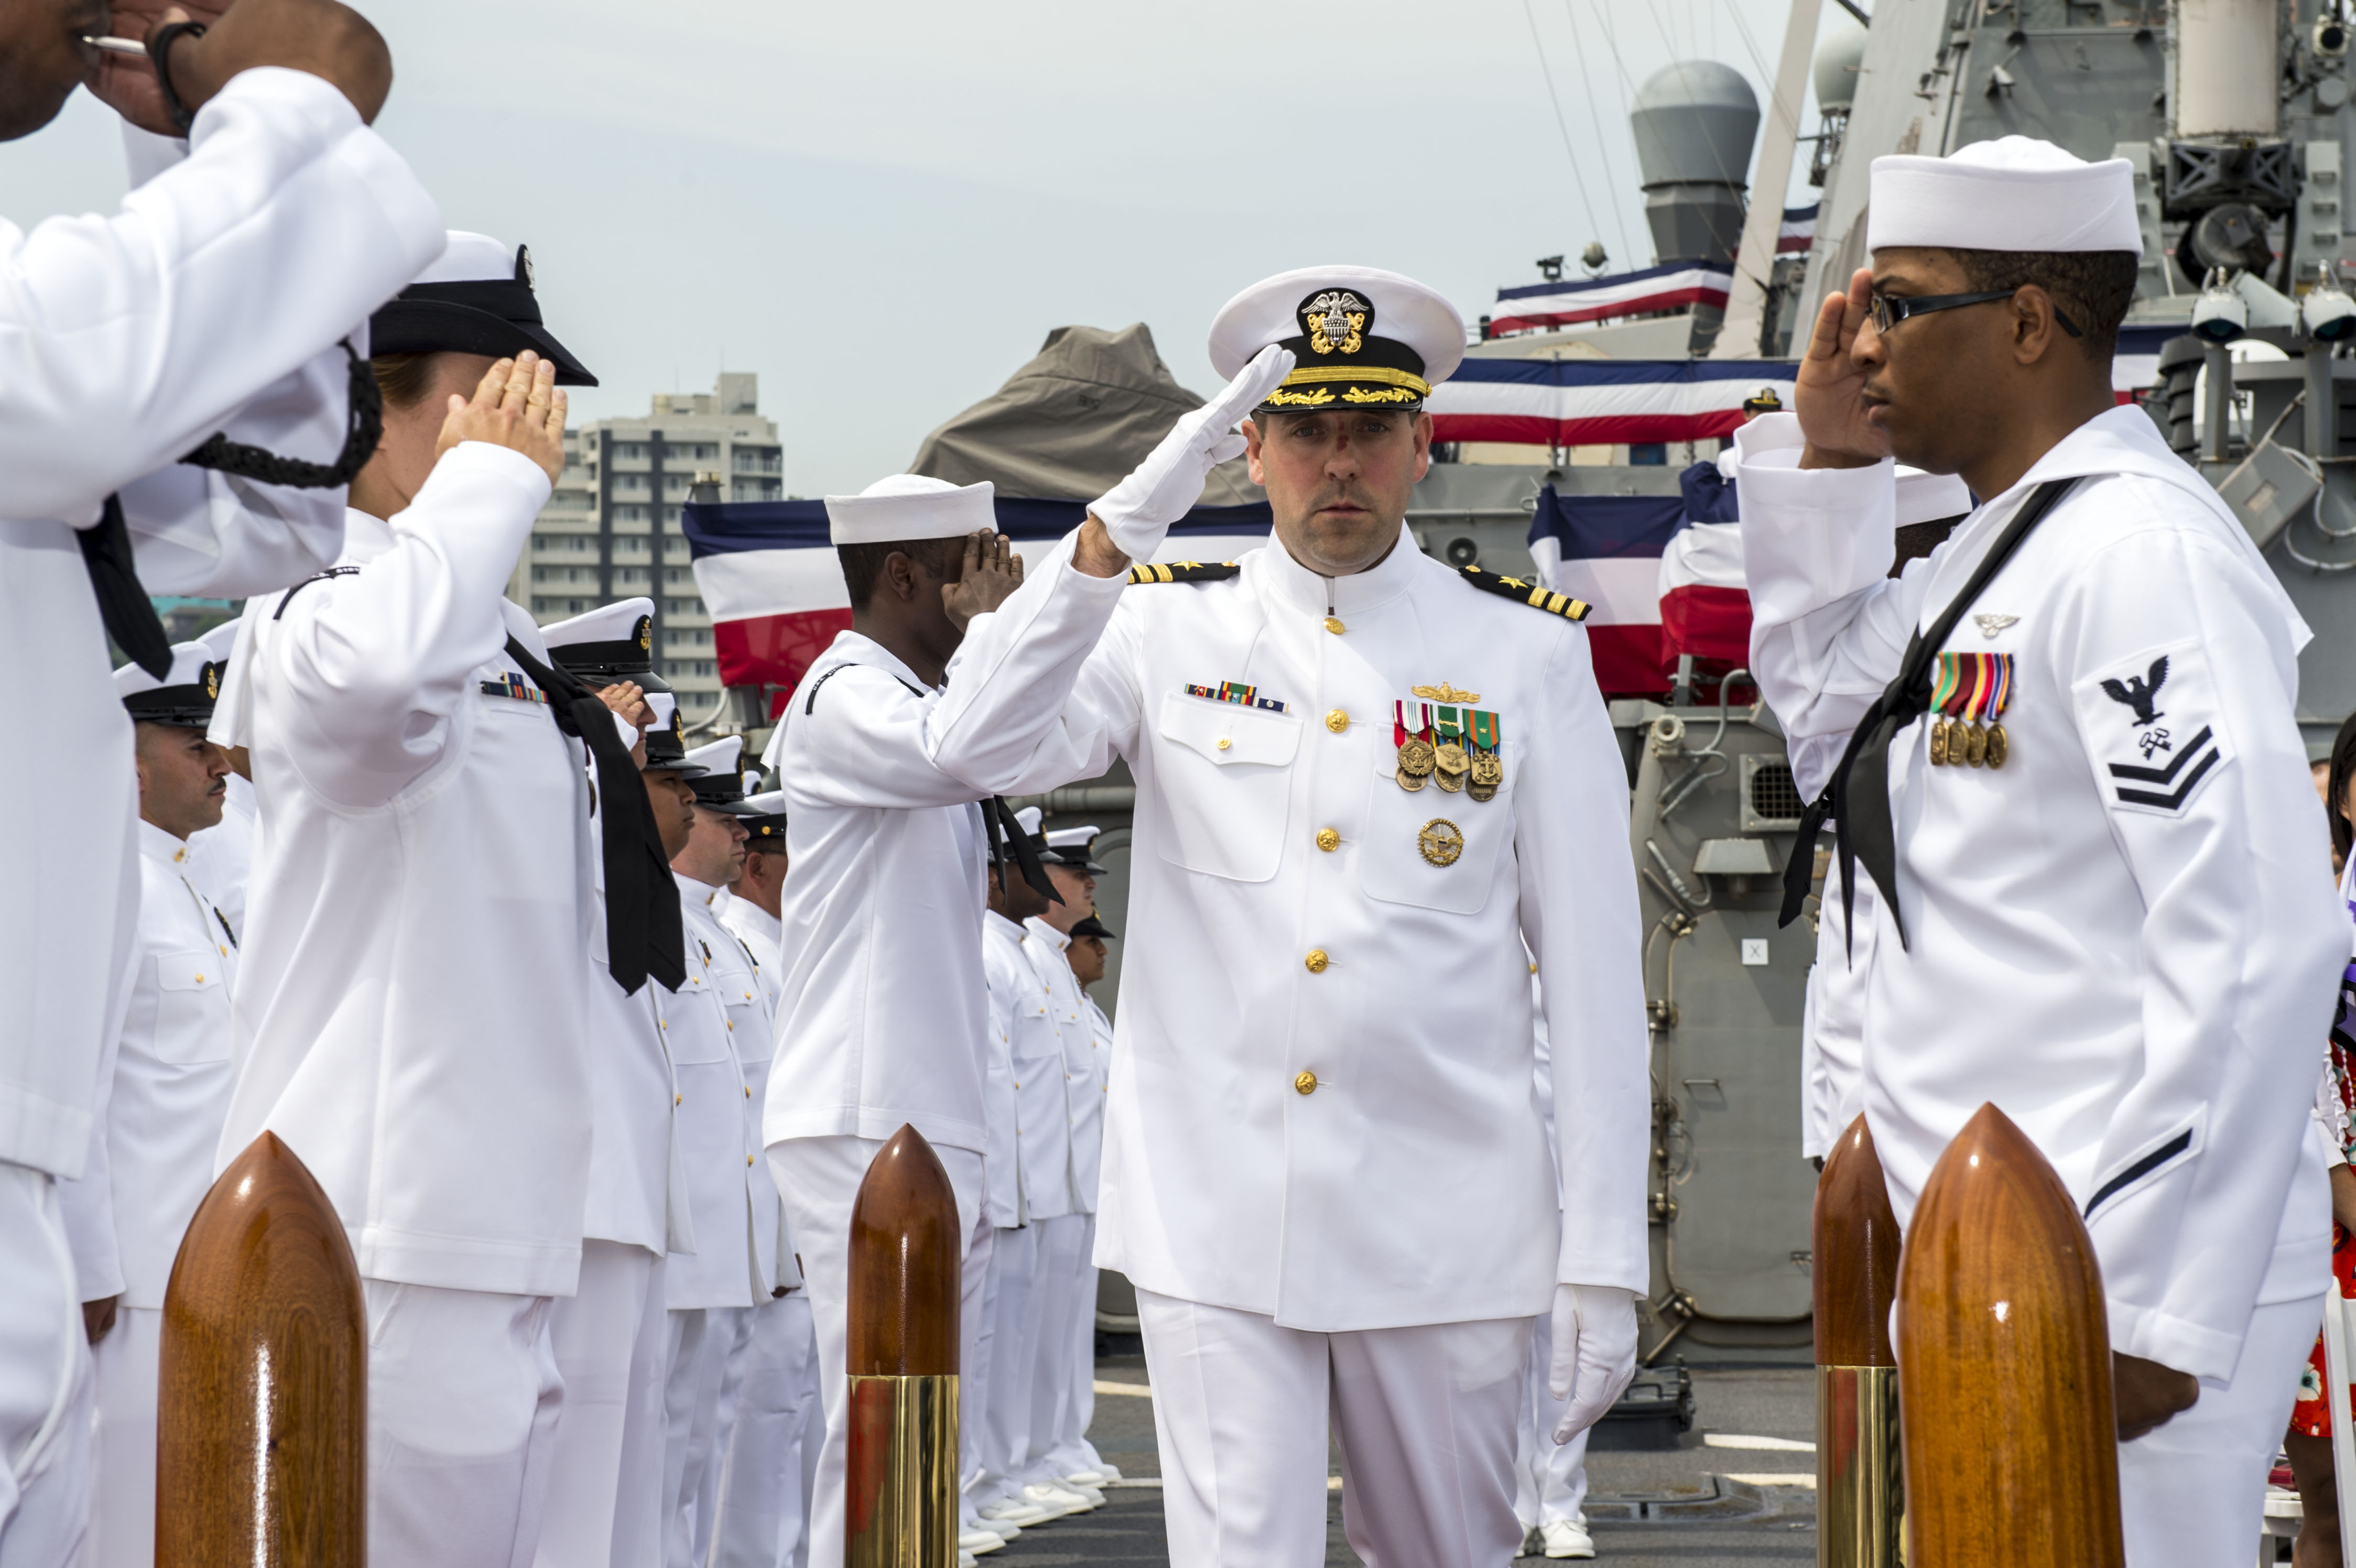 Stethem Bids Farewell, Welcomes New Commanding Officer